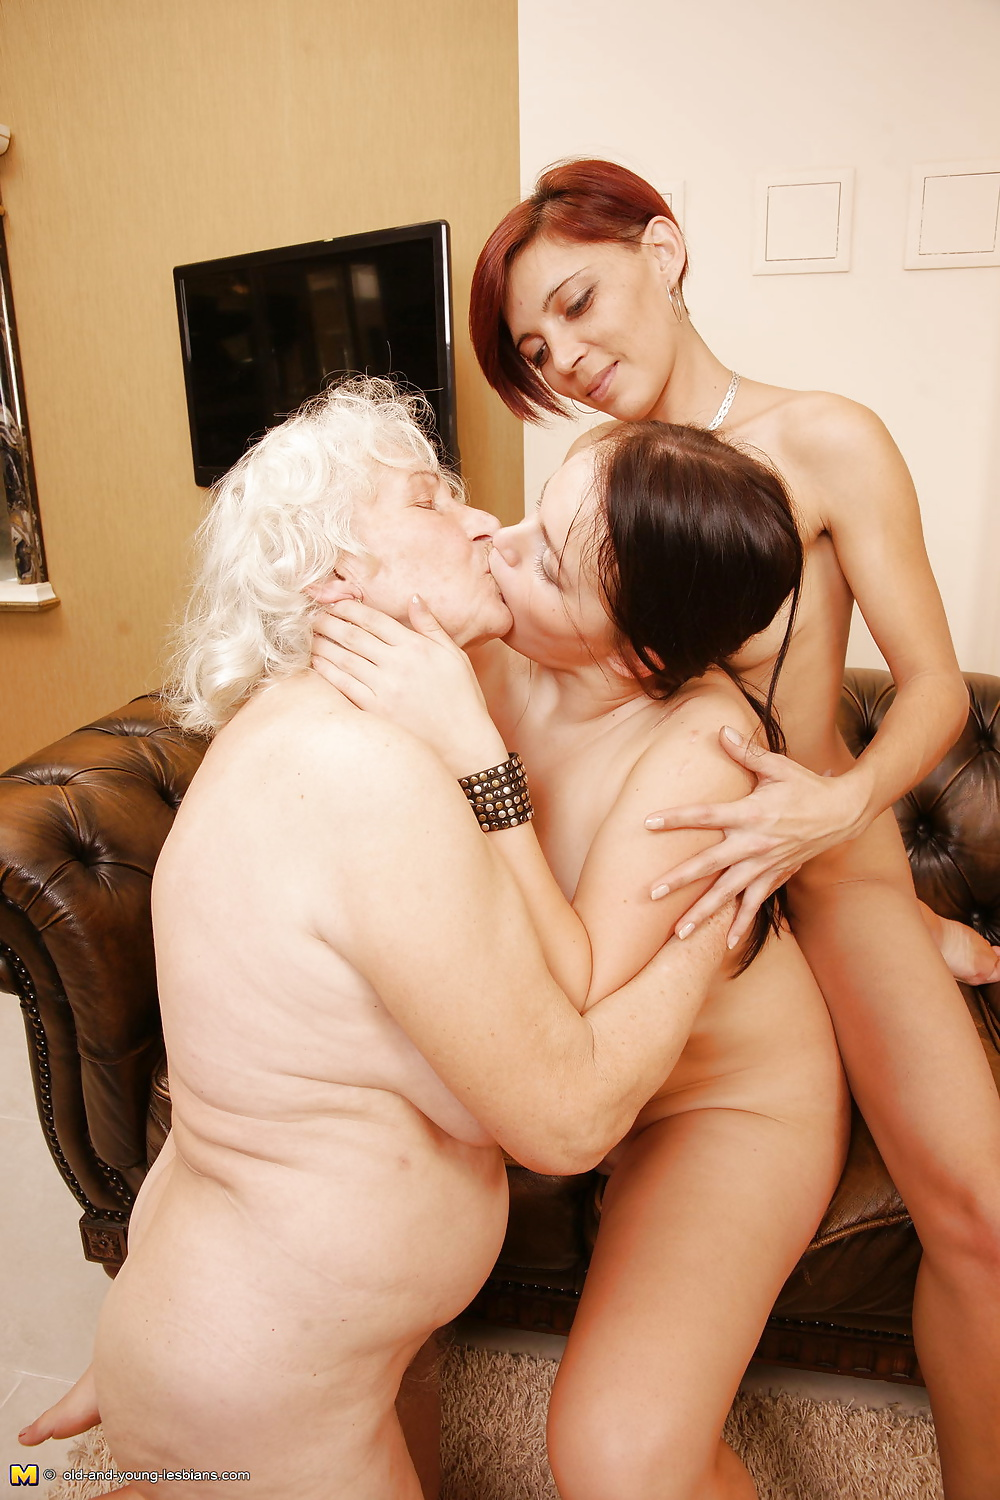 free-streaming-old-young-lesbian-porn-hot-chick-fitness-porn